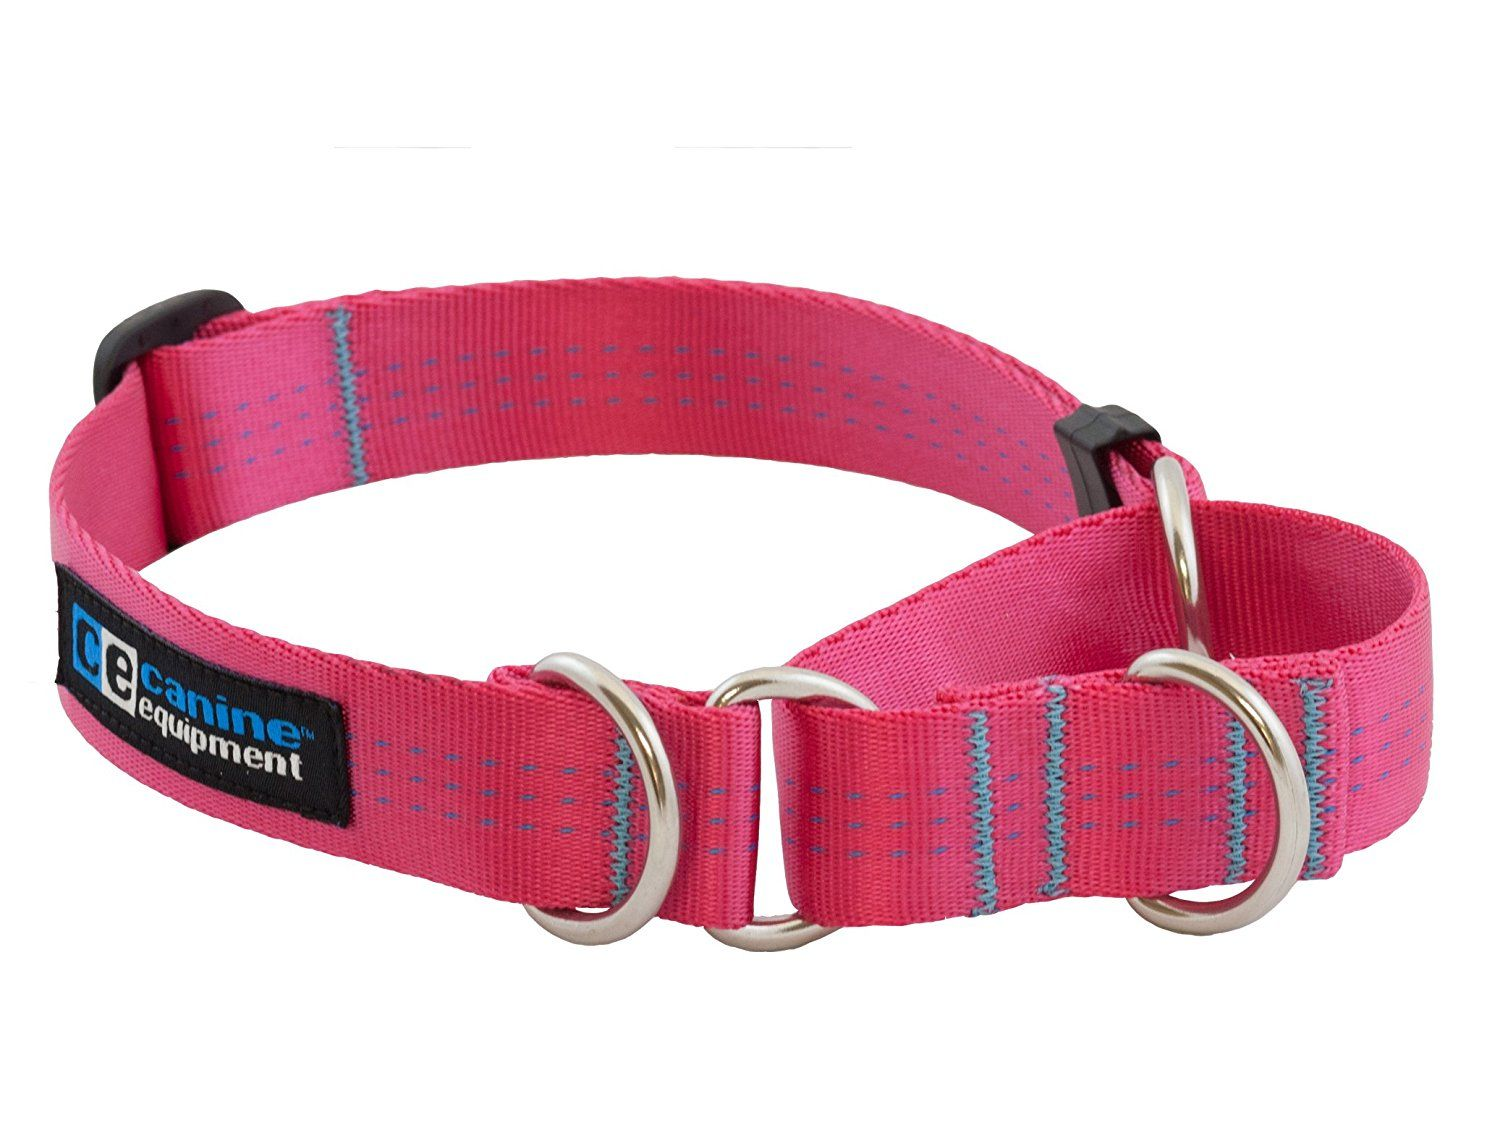 Canine Equipment Technika All Webbing Martingale Dog Collar Click Image To Review More Details Martingale Dog Collar Dog Collar Dog Training Pads